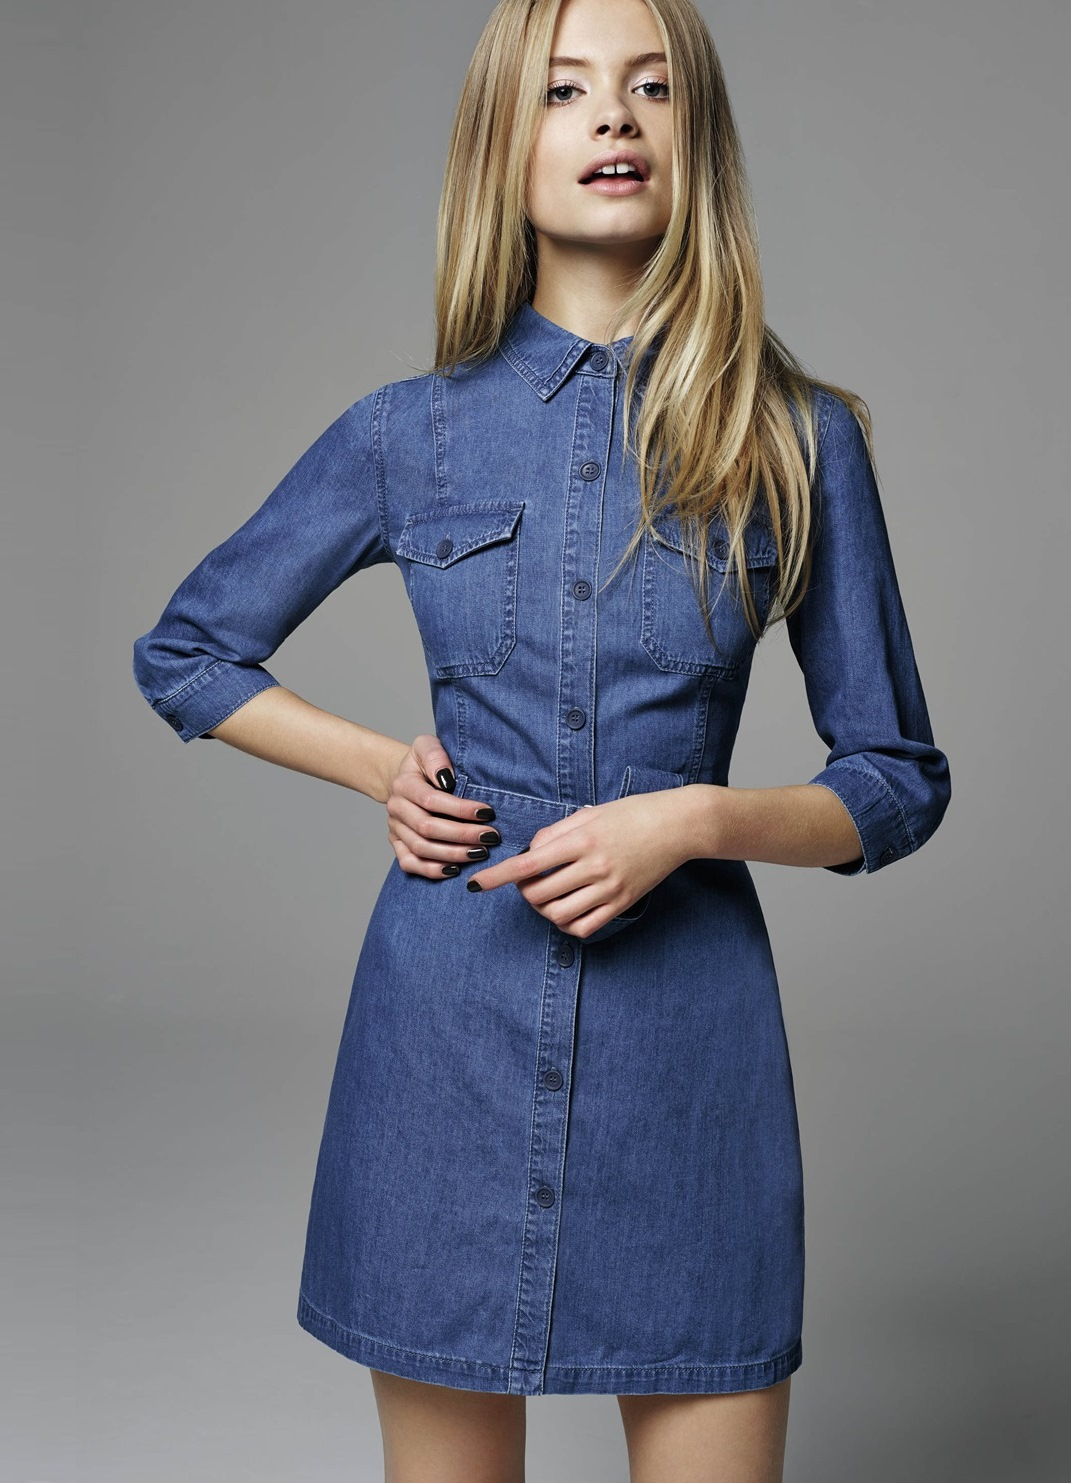 how to wear a denim shirt dress in winter